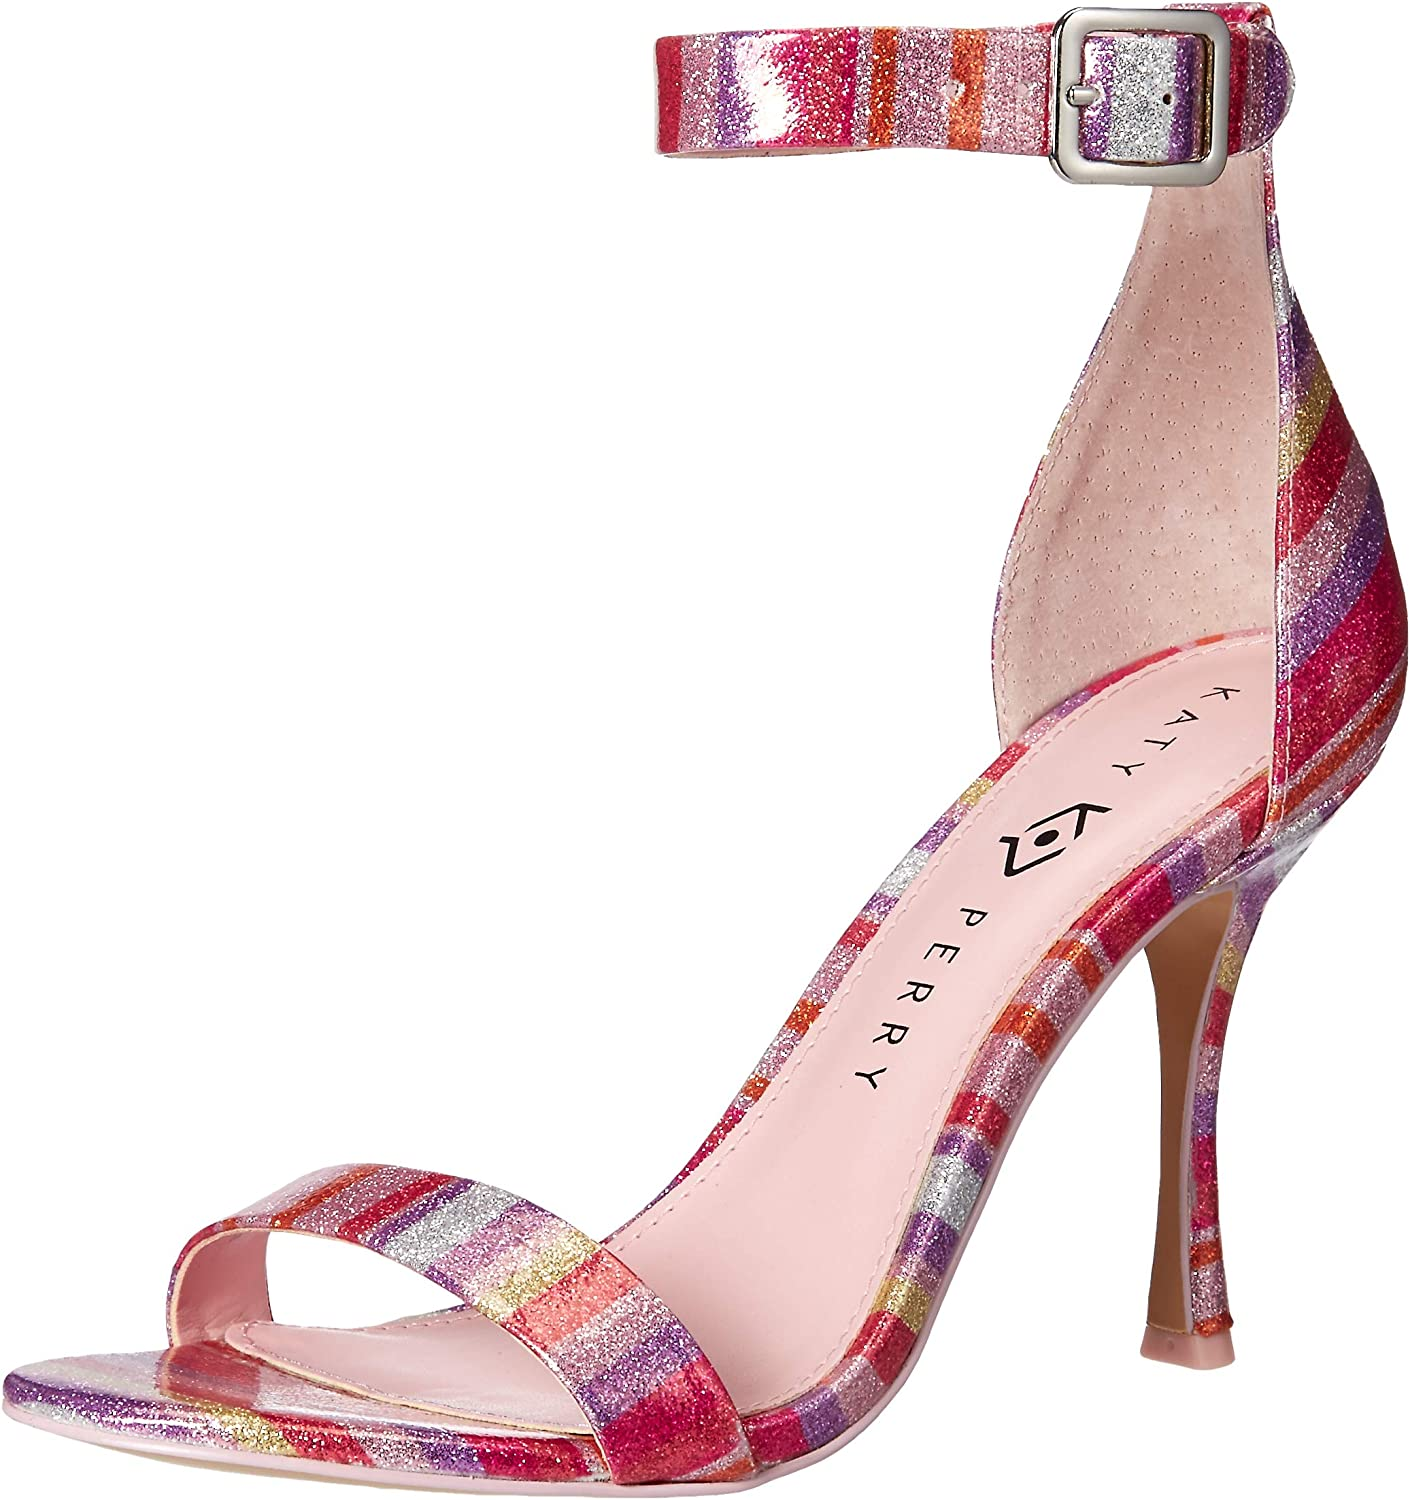 Katy Perry Super-cheap Sale SALE% OFF Women's Heeled Sandal Ankle-Strap